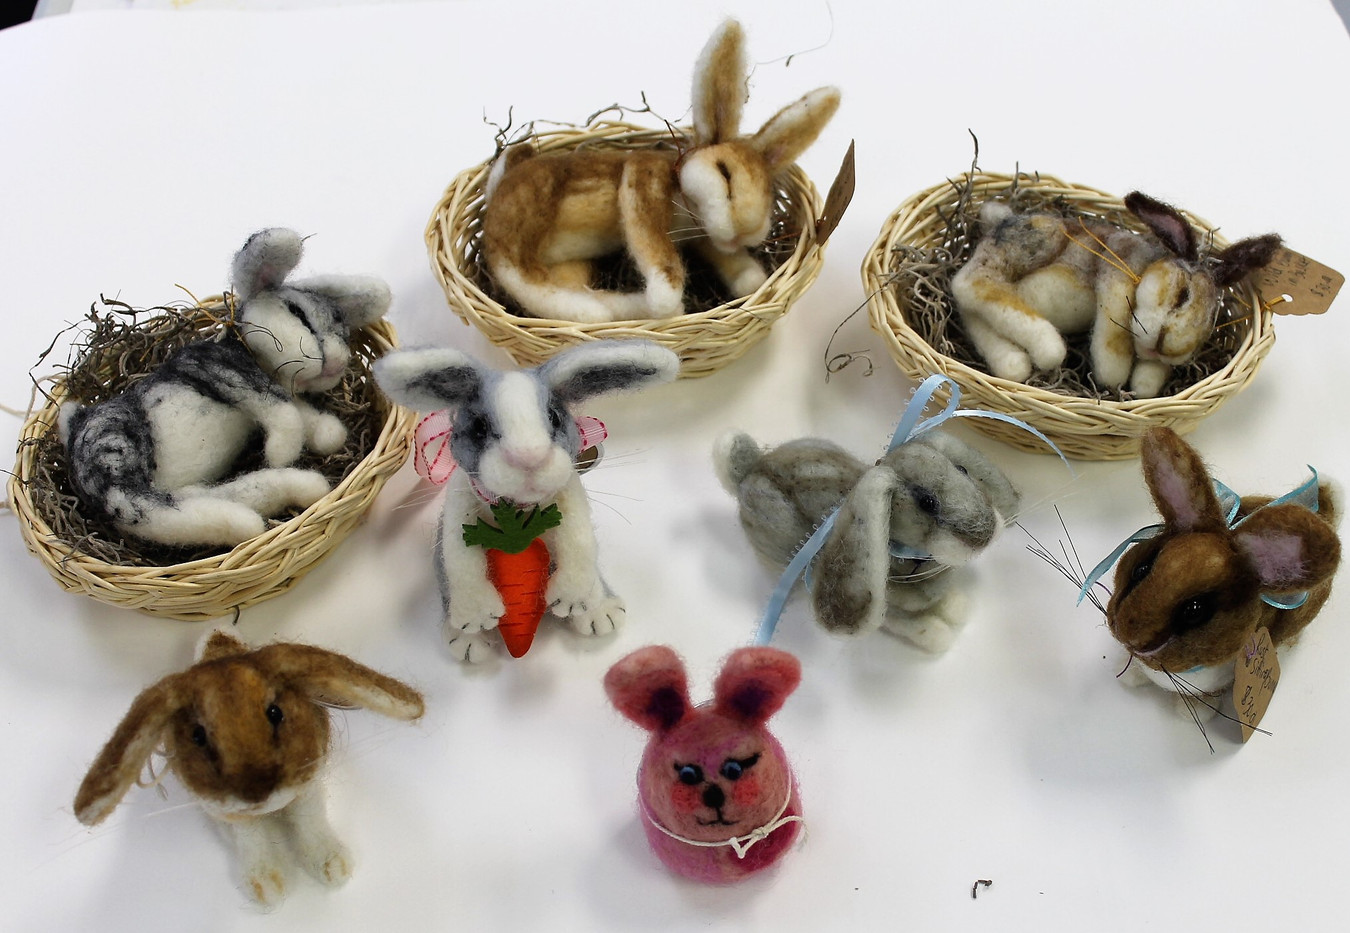 Bunches of Needle-Felted Bunnies